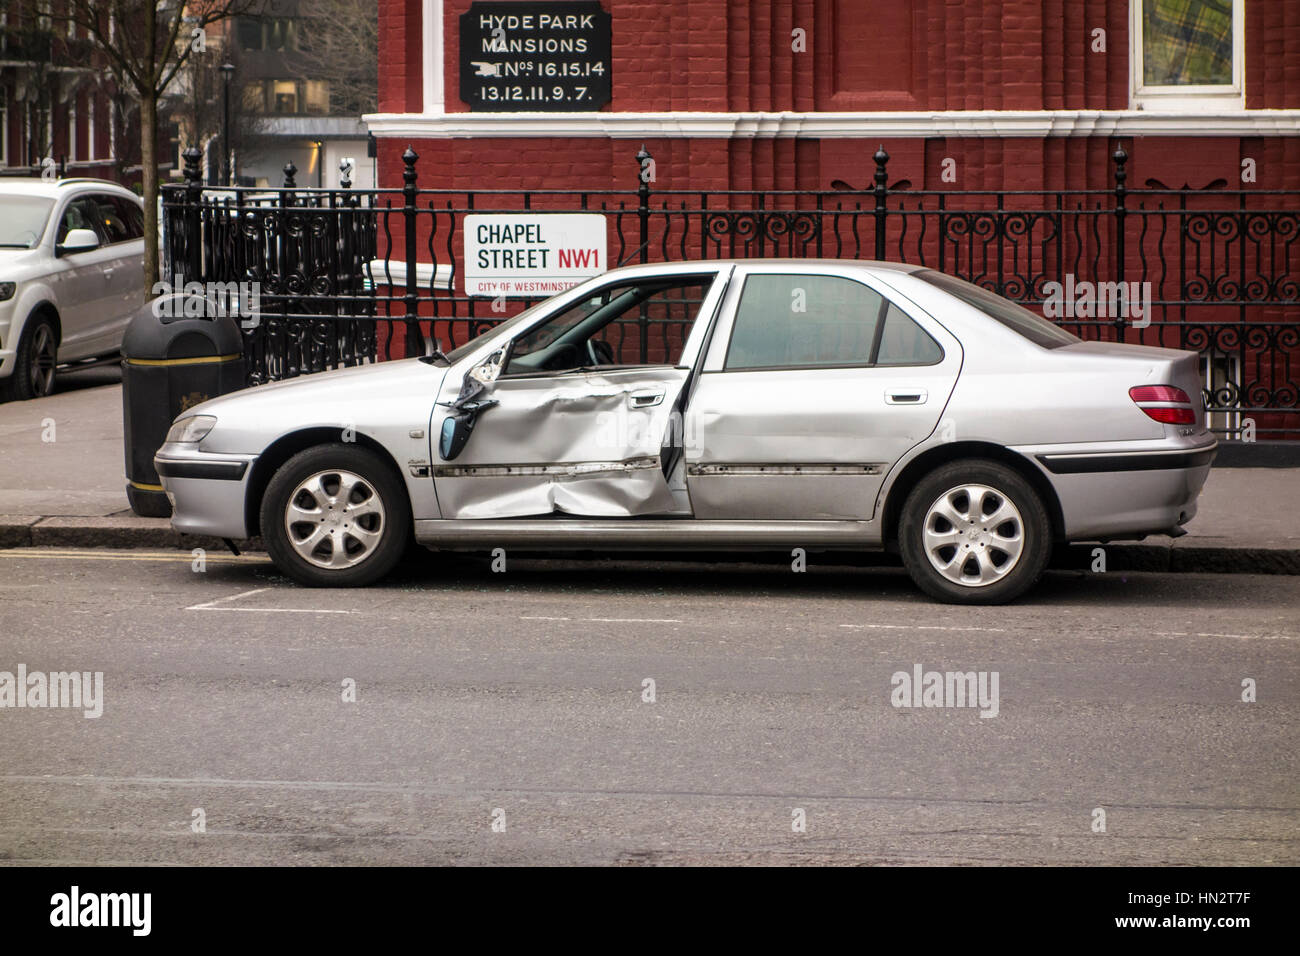 Damaged car parked at the side of the road, London, UK - Stock Image